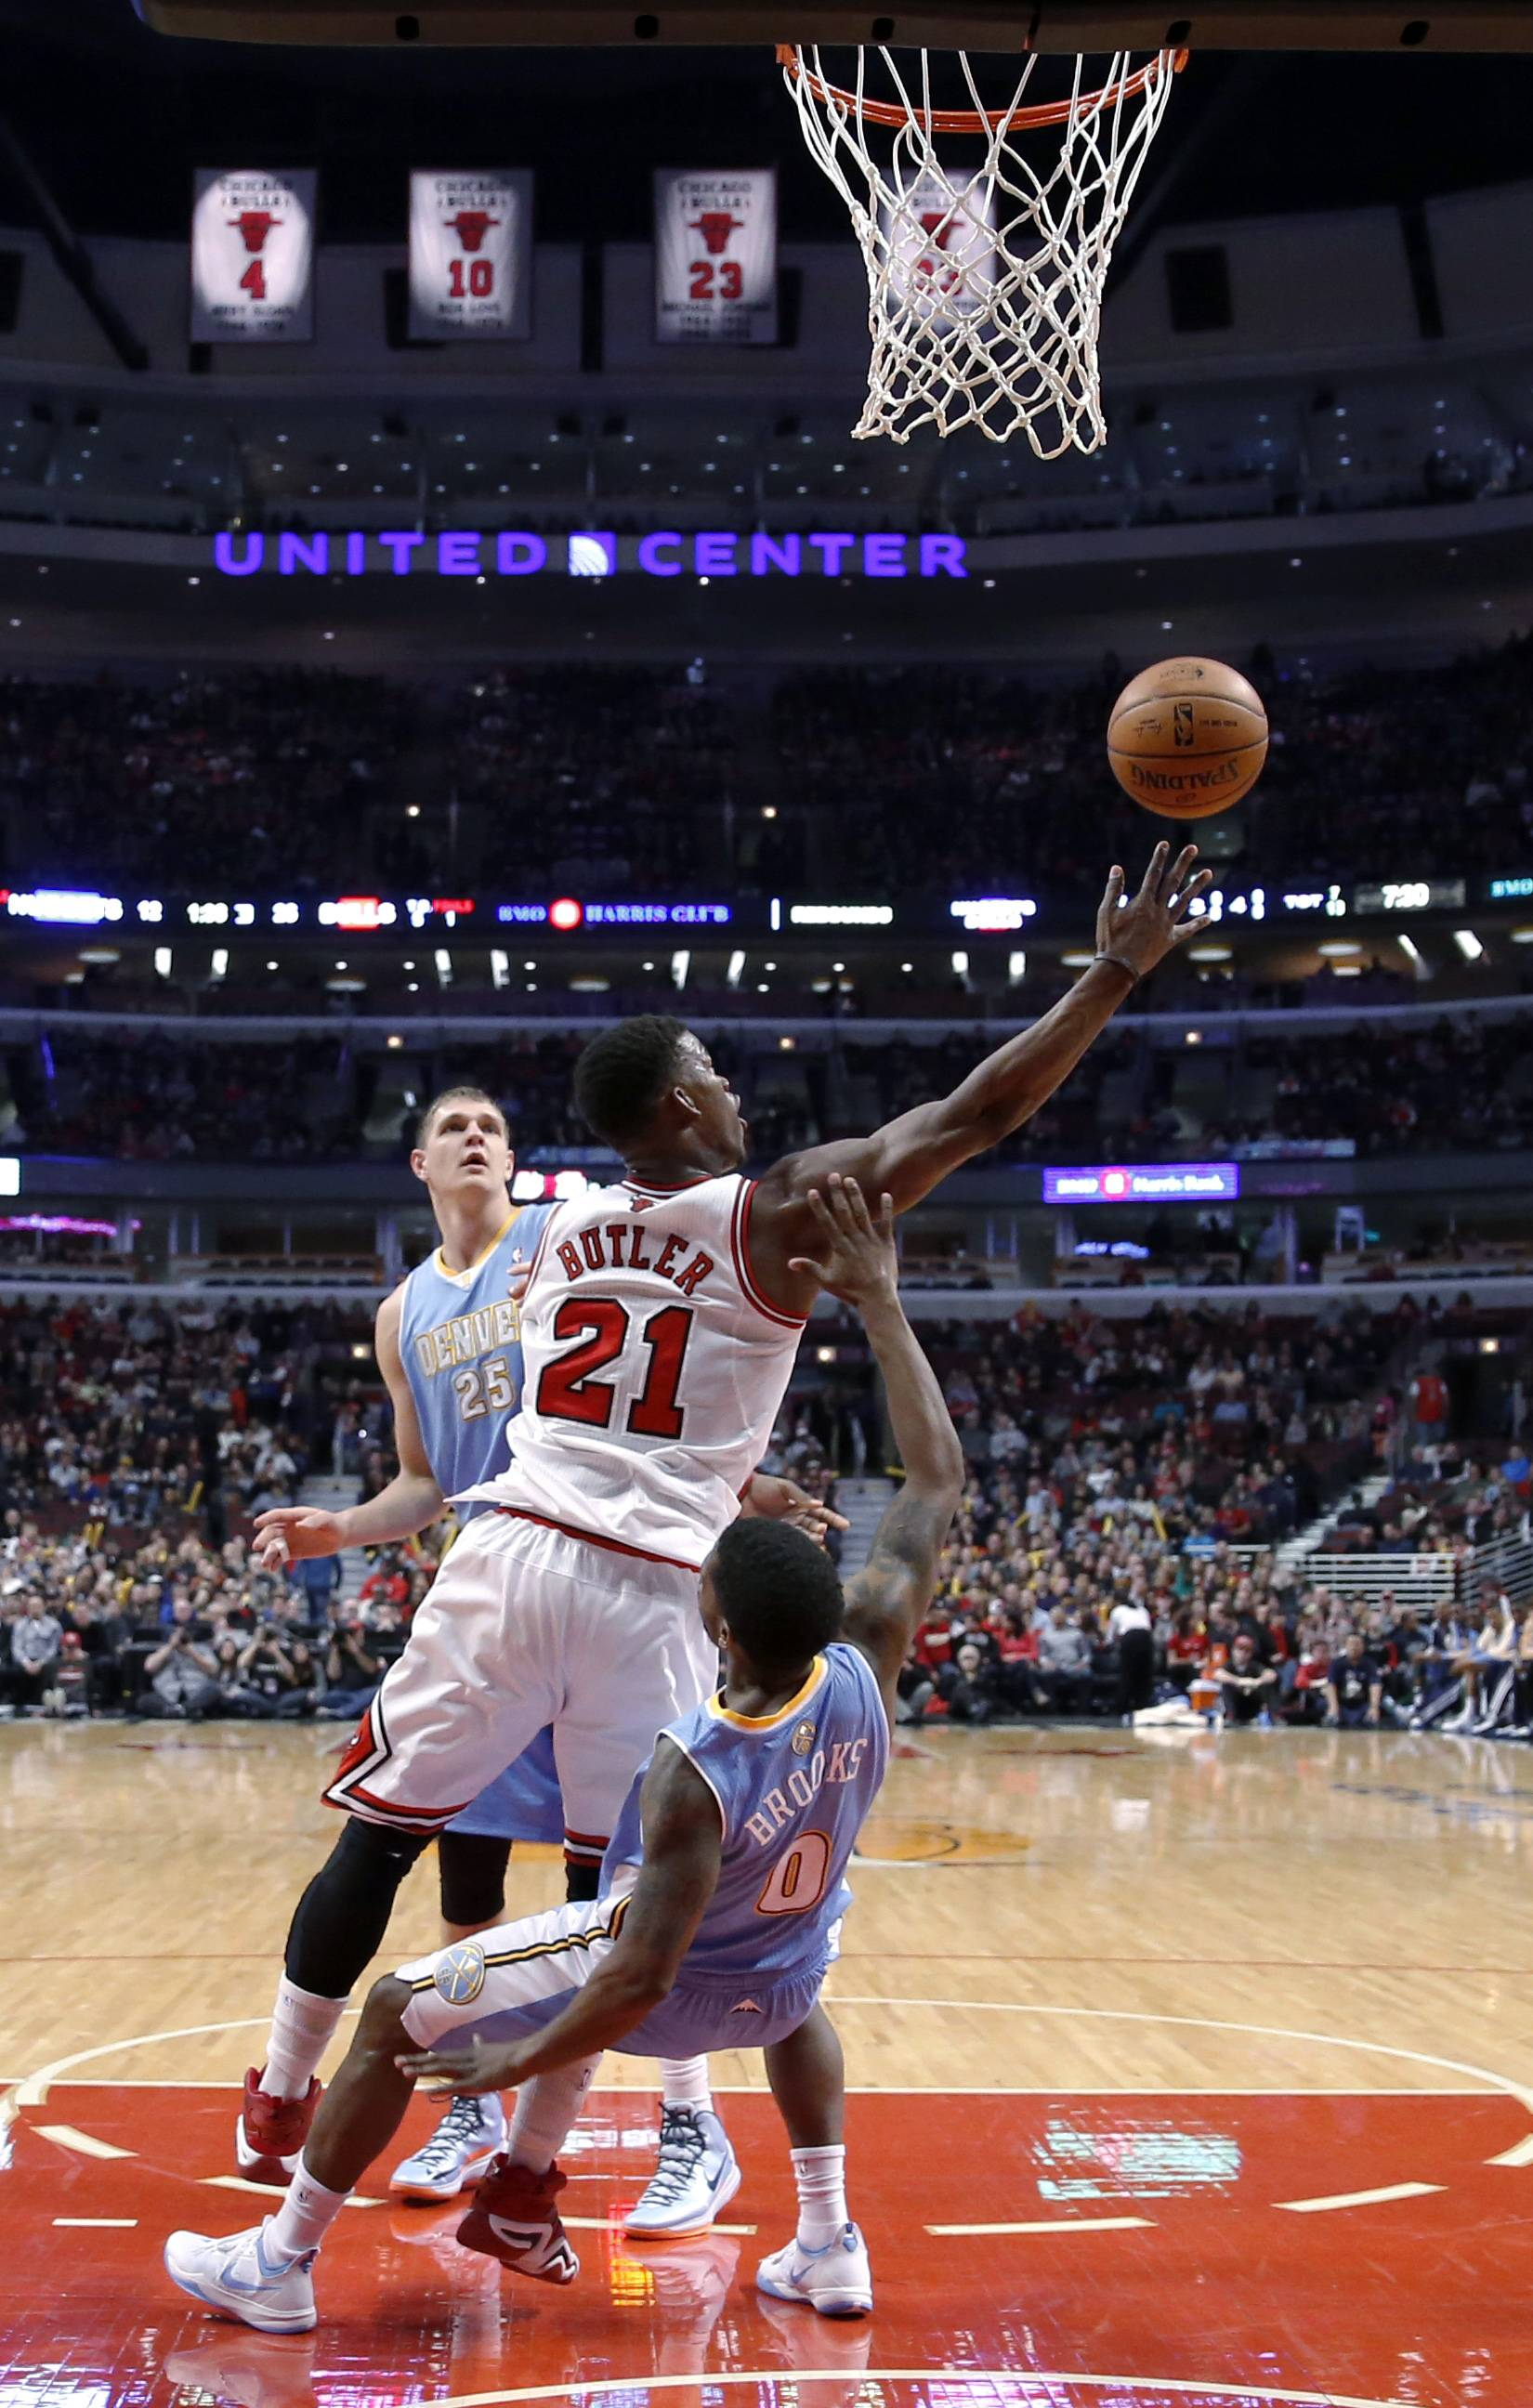 D.J. Augustin had 22 points and eight assists, and the Bulls routed the Denver Nuggets 117-89 Friday night for their fifth consecutive victory. Rookie Tony Snell added a career-high 20 points as the Bulls put seven players in double figures. Taj Gibson had 15 points and 10 rebounds, and Joakim Noah finished with 14 points, 11 boards and five assists.